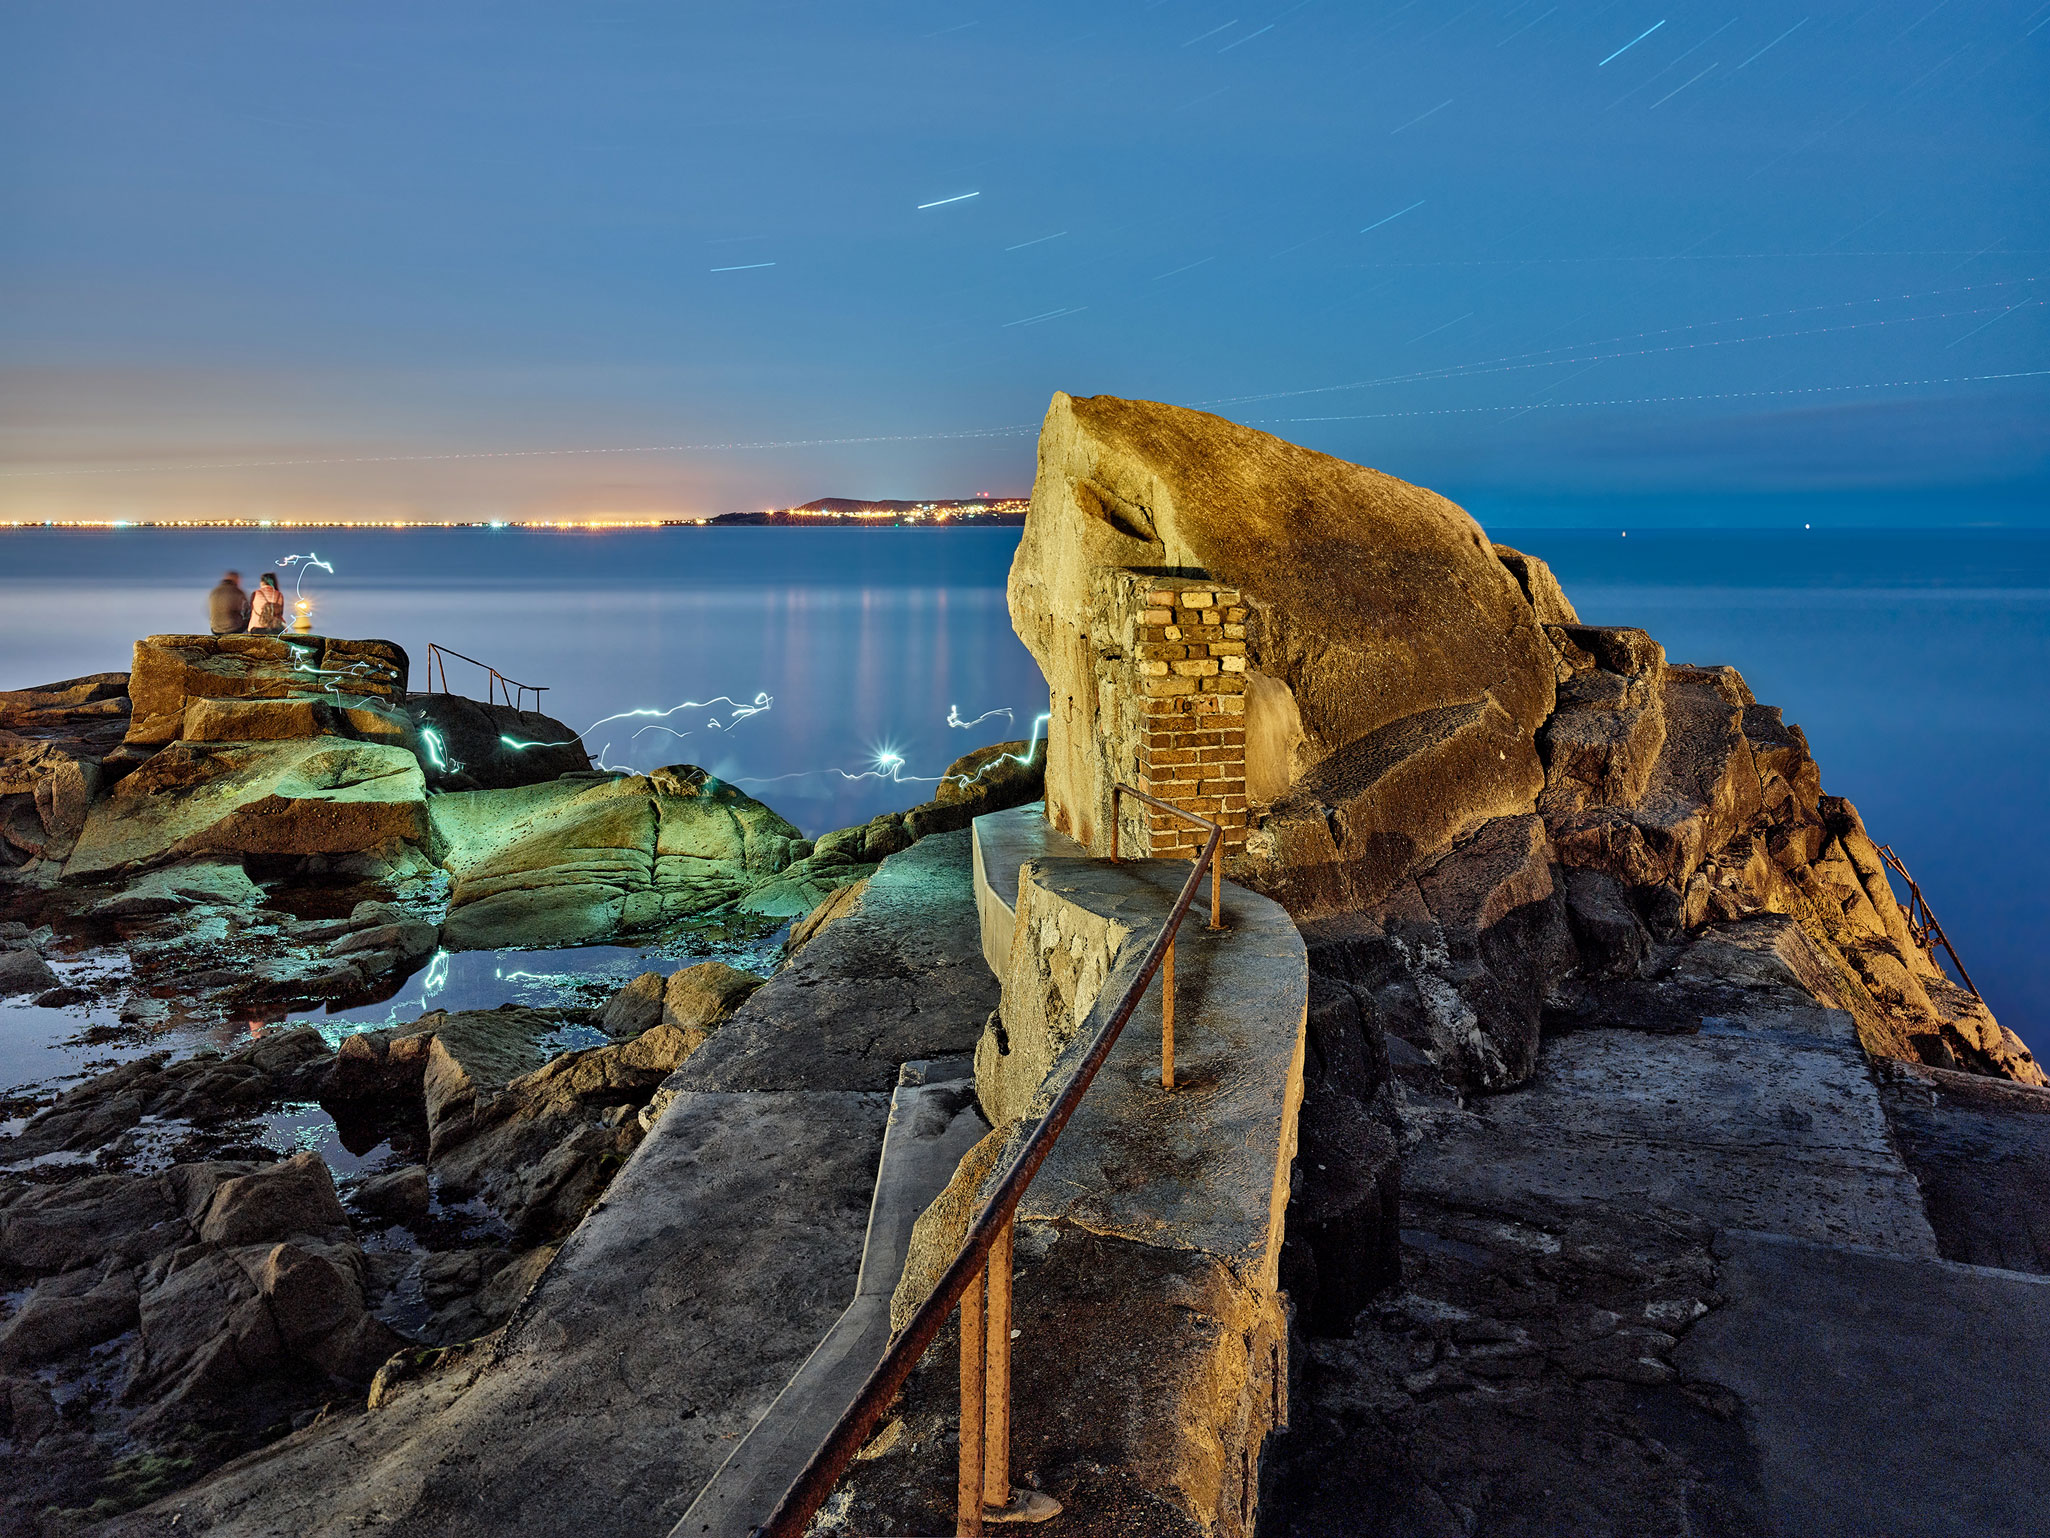 The Forty Foot, prints dun laoghaire